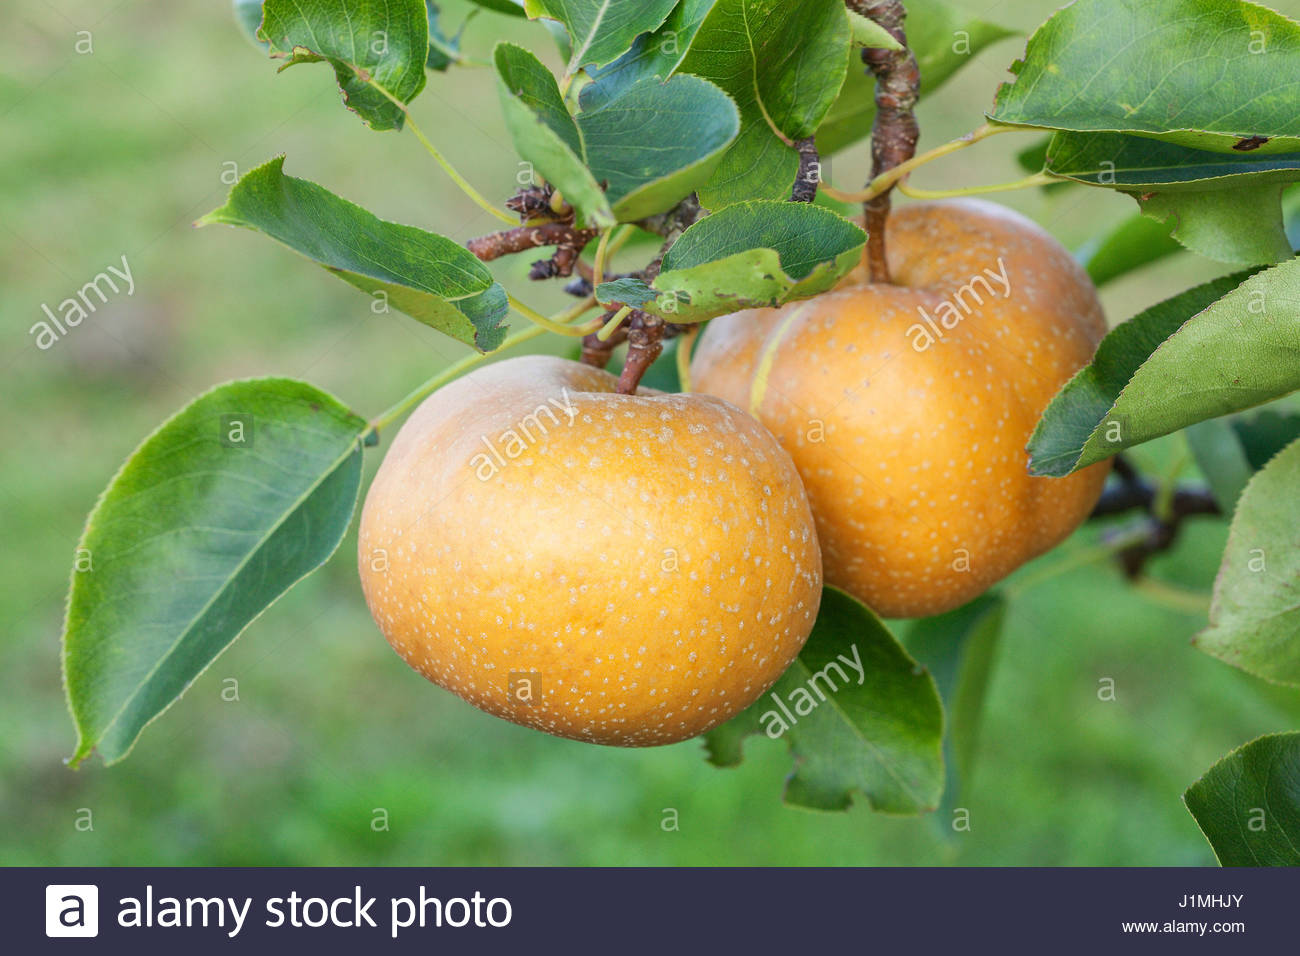 Shinko asian pear edible landscaping - Pyrus Pyrifolia Asian Pear Eiko On Tree Stock Image